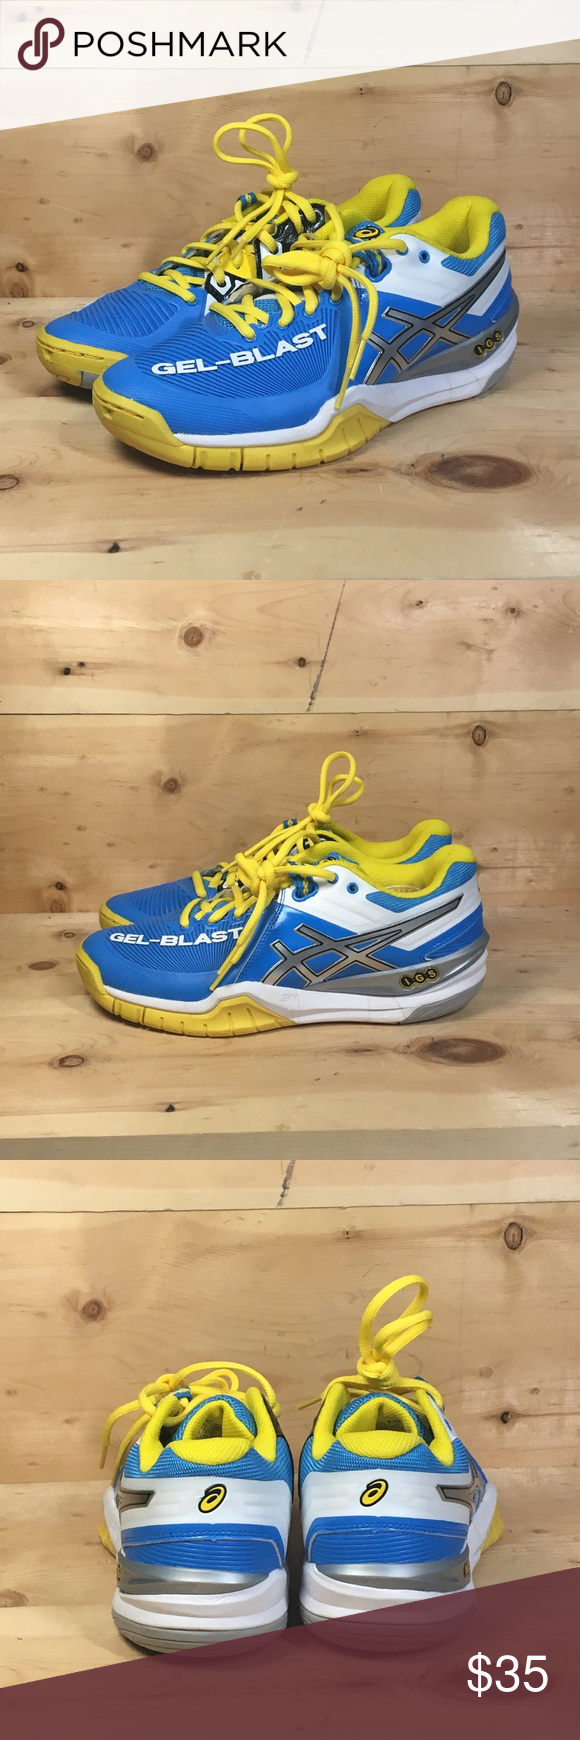 Asics Gel Blast Igs Asics E463y Gel Blast Igs Indoor Volleyball Shoes Size 7 Asics Shoes Athletic Shoes In 2020 Volleyball Shoes Asics Women Asics Gel